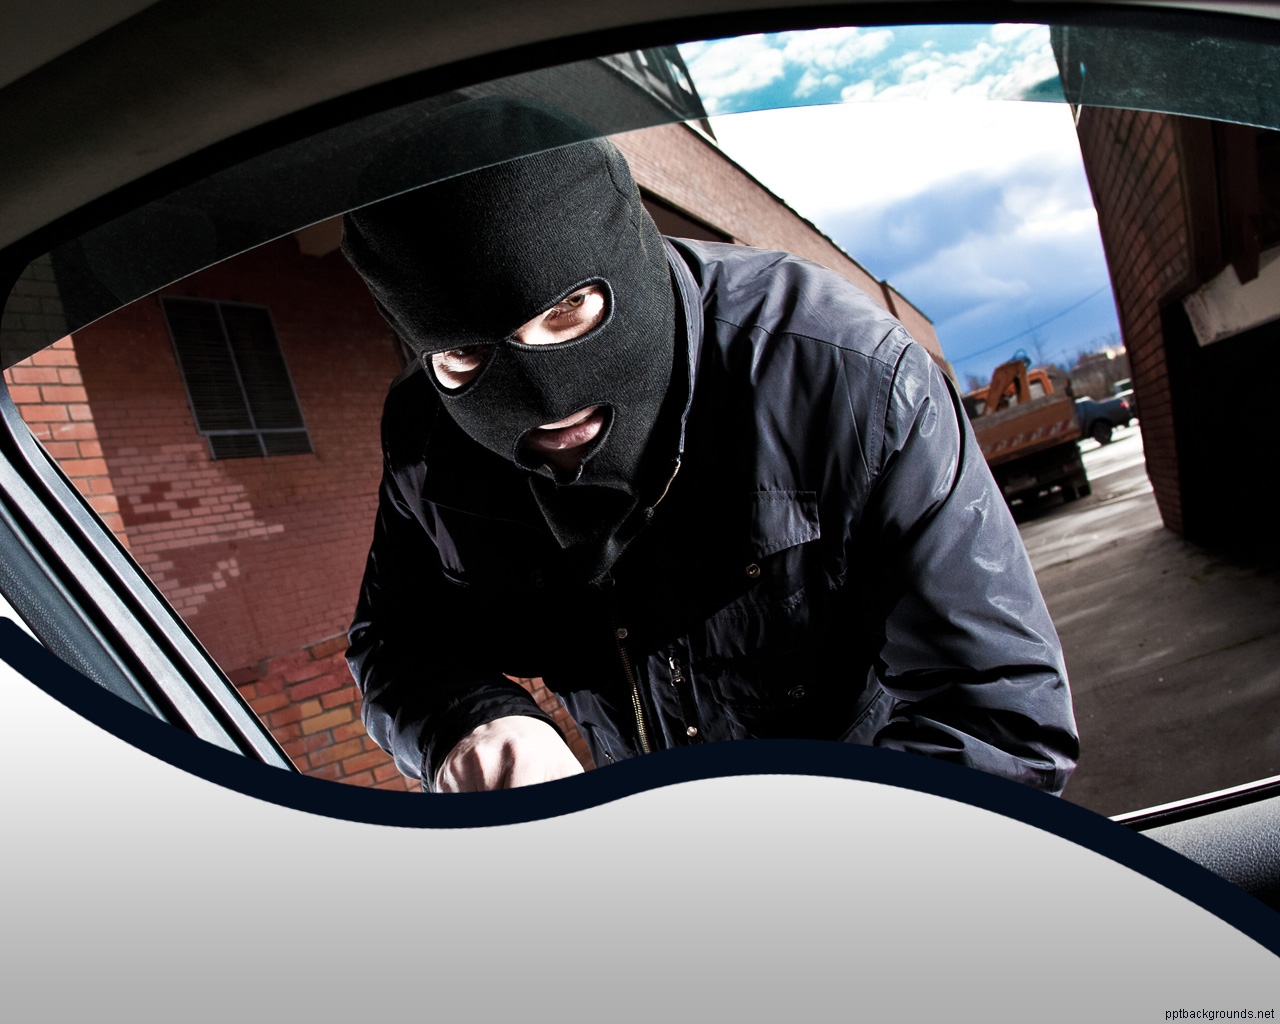 Free thief backgrounds for. Burglar clipart car